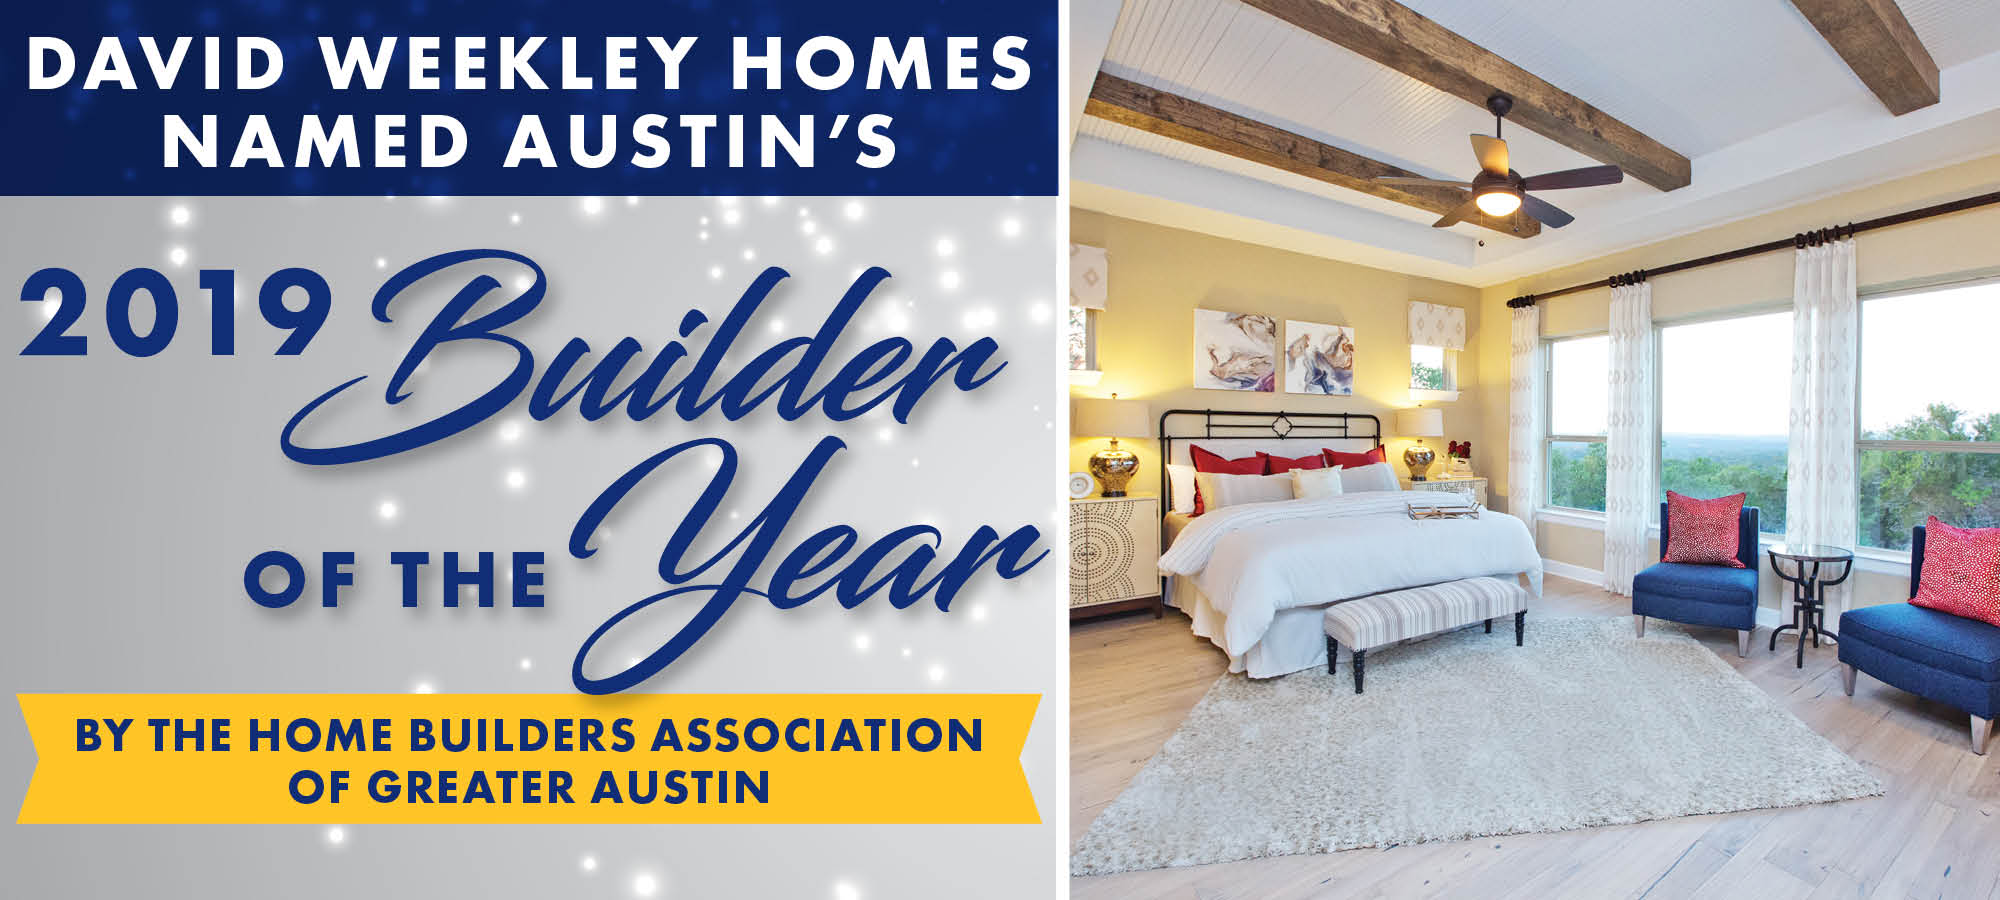 David Weekley Homes Wins Builder of the Year in Austin!